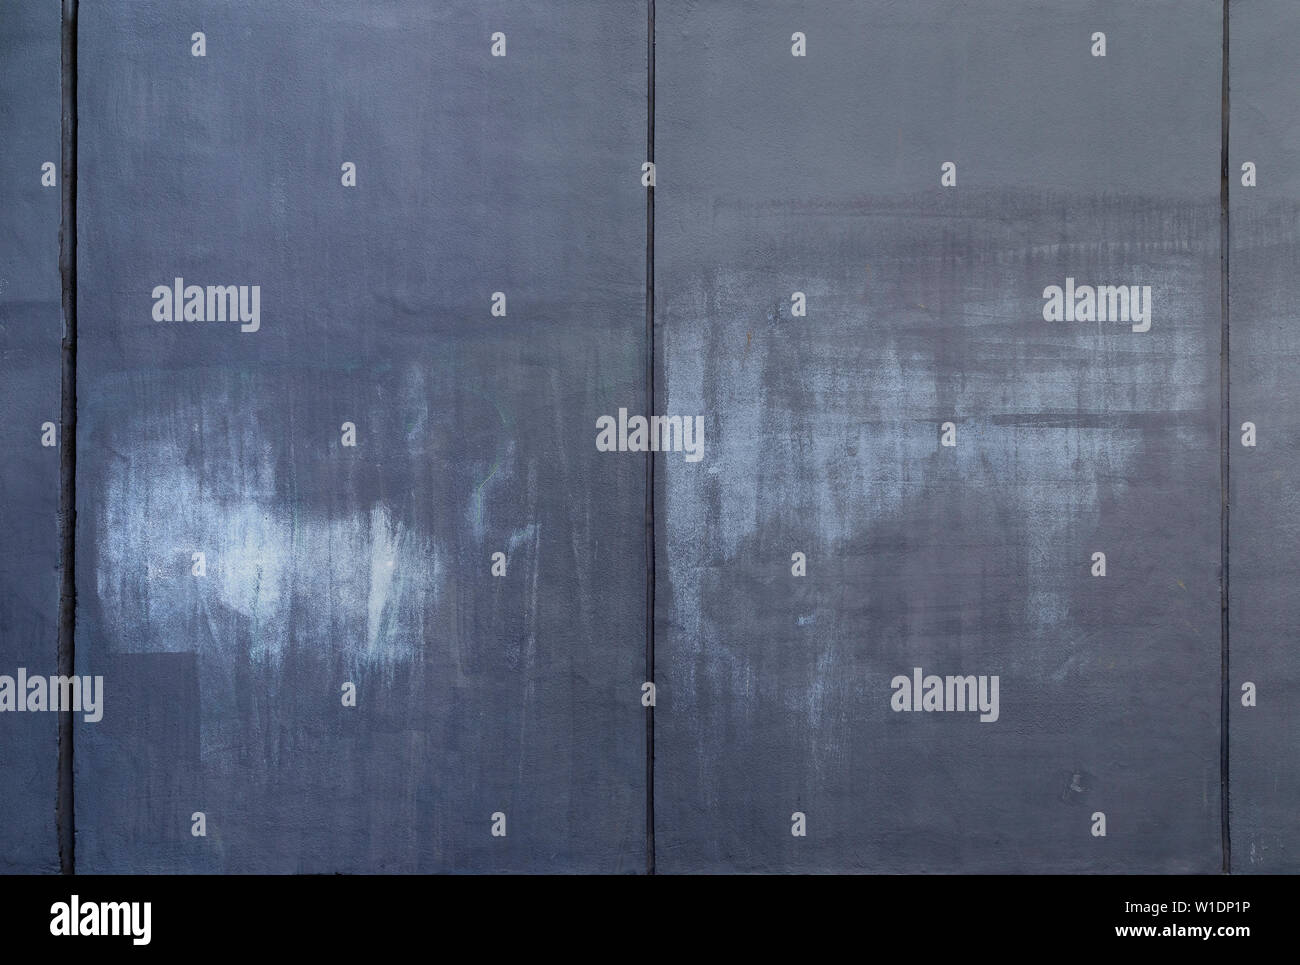 High resolution full frame background of a dark concrete wall painted in gray with lighter marks as a result of graffiti removal. Copy space. Stock Photo